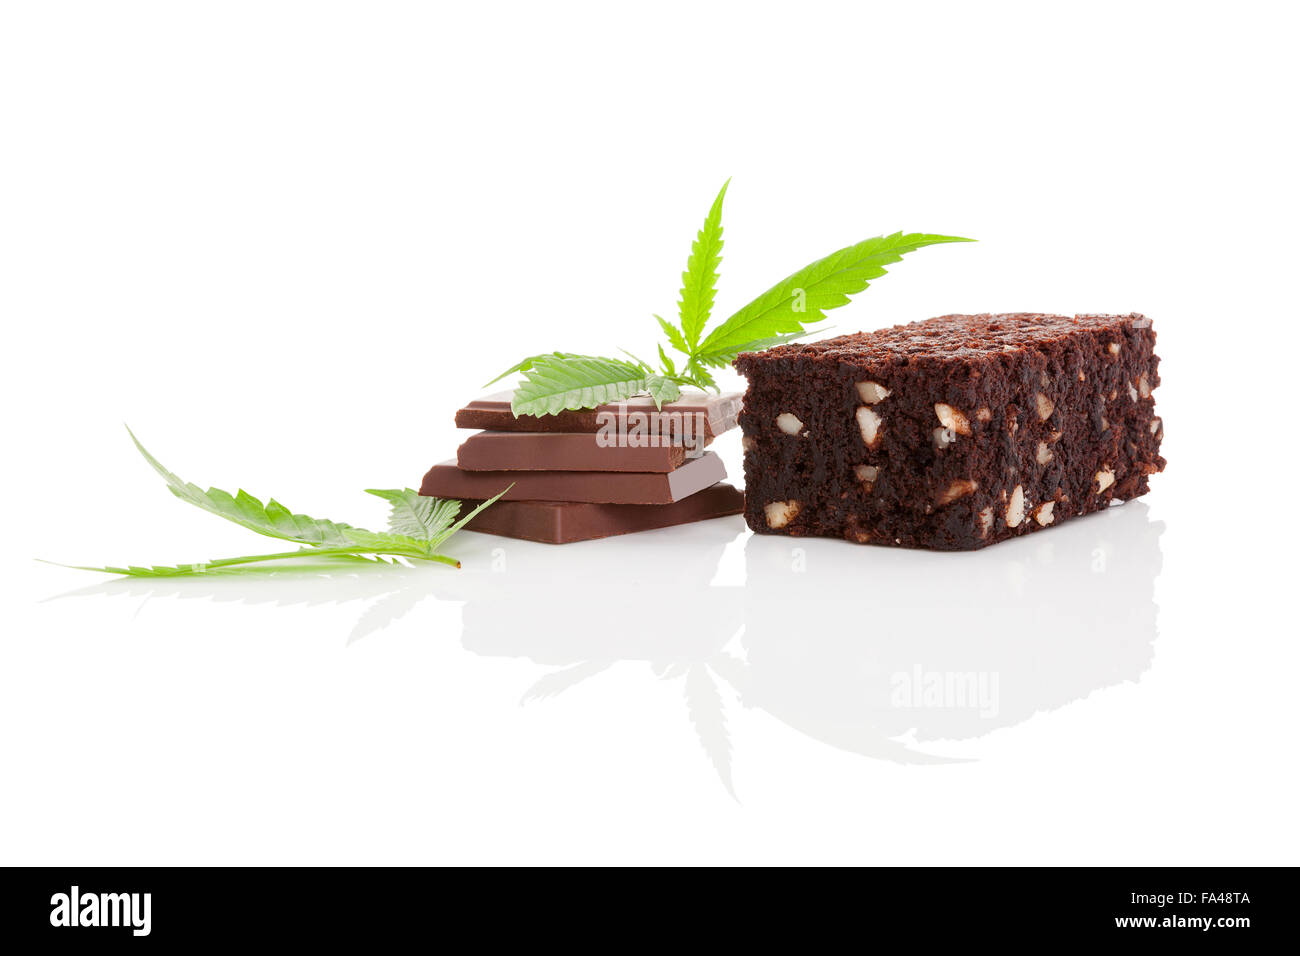 Cannabis chocolate and cannabis brownie with ganja leaf isolated on white background. - Stock Image